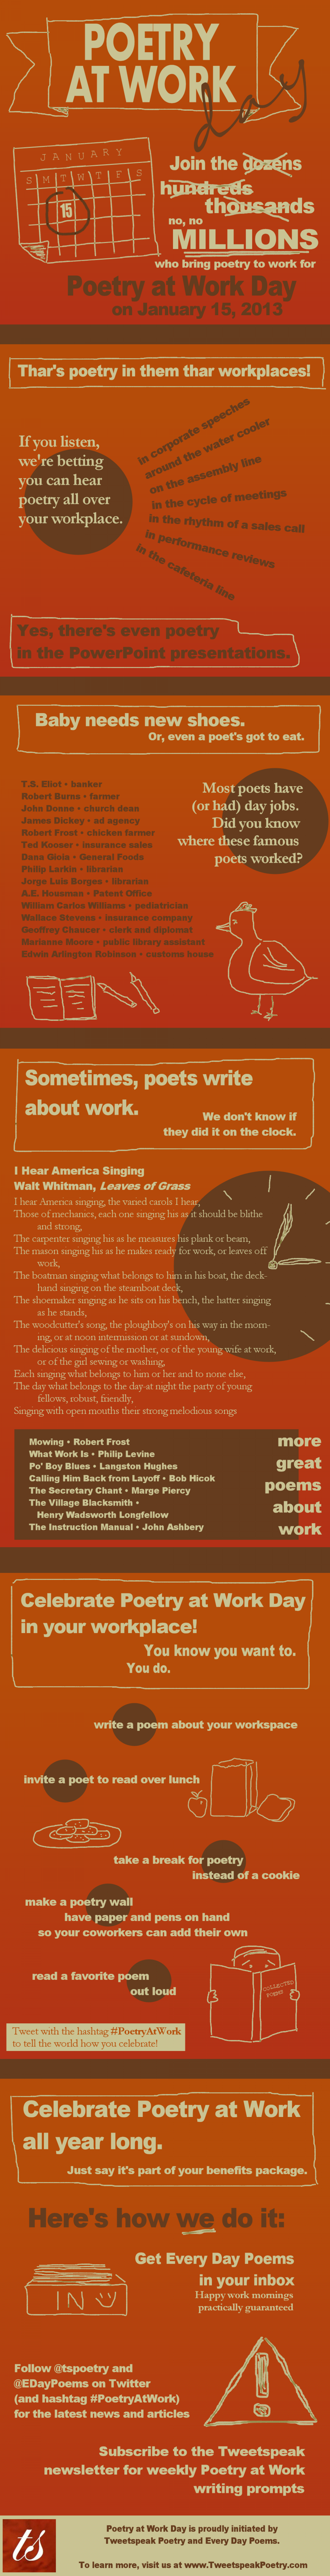 Poetry at Work Day Infographic